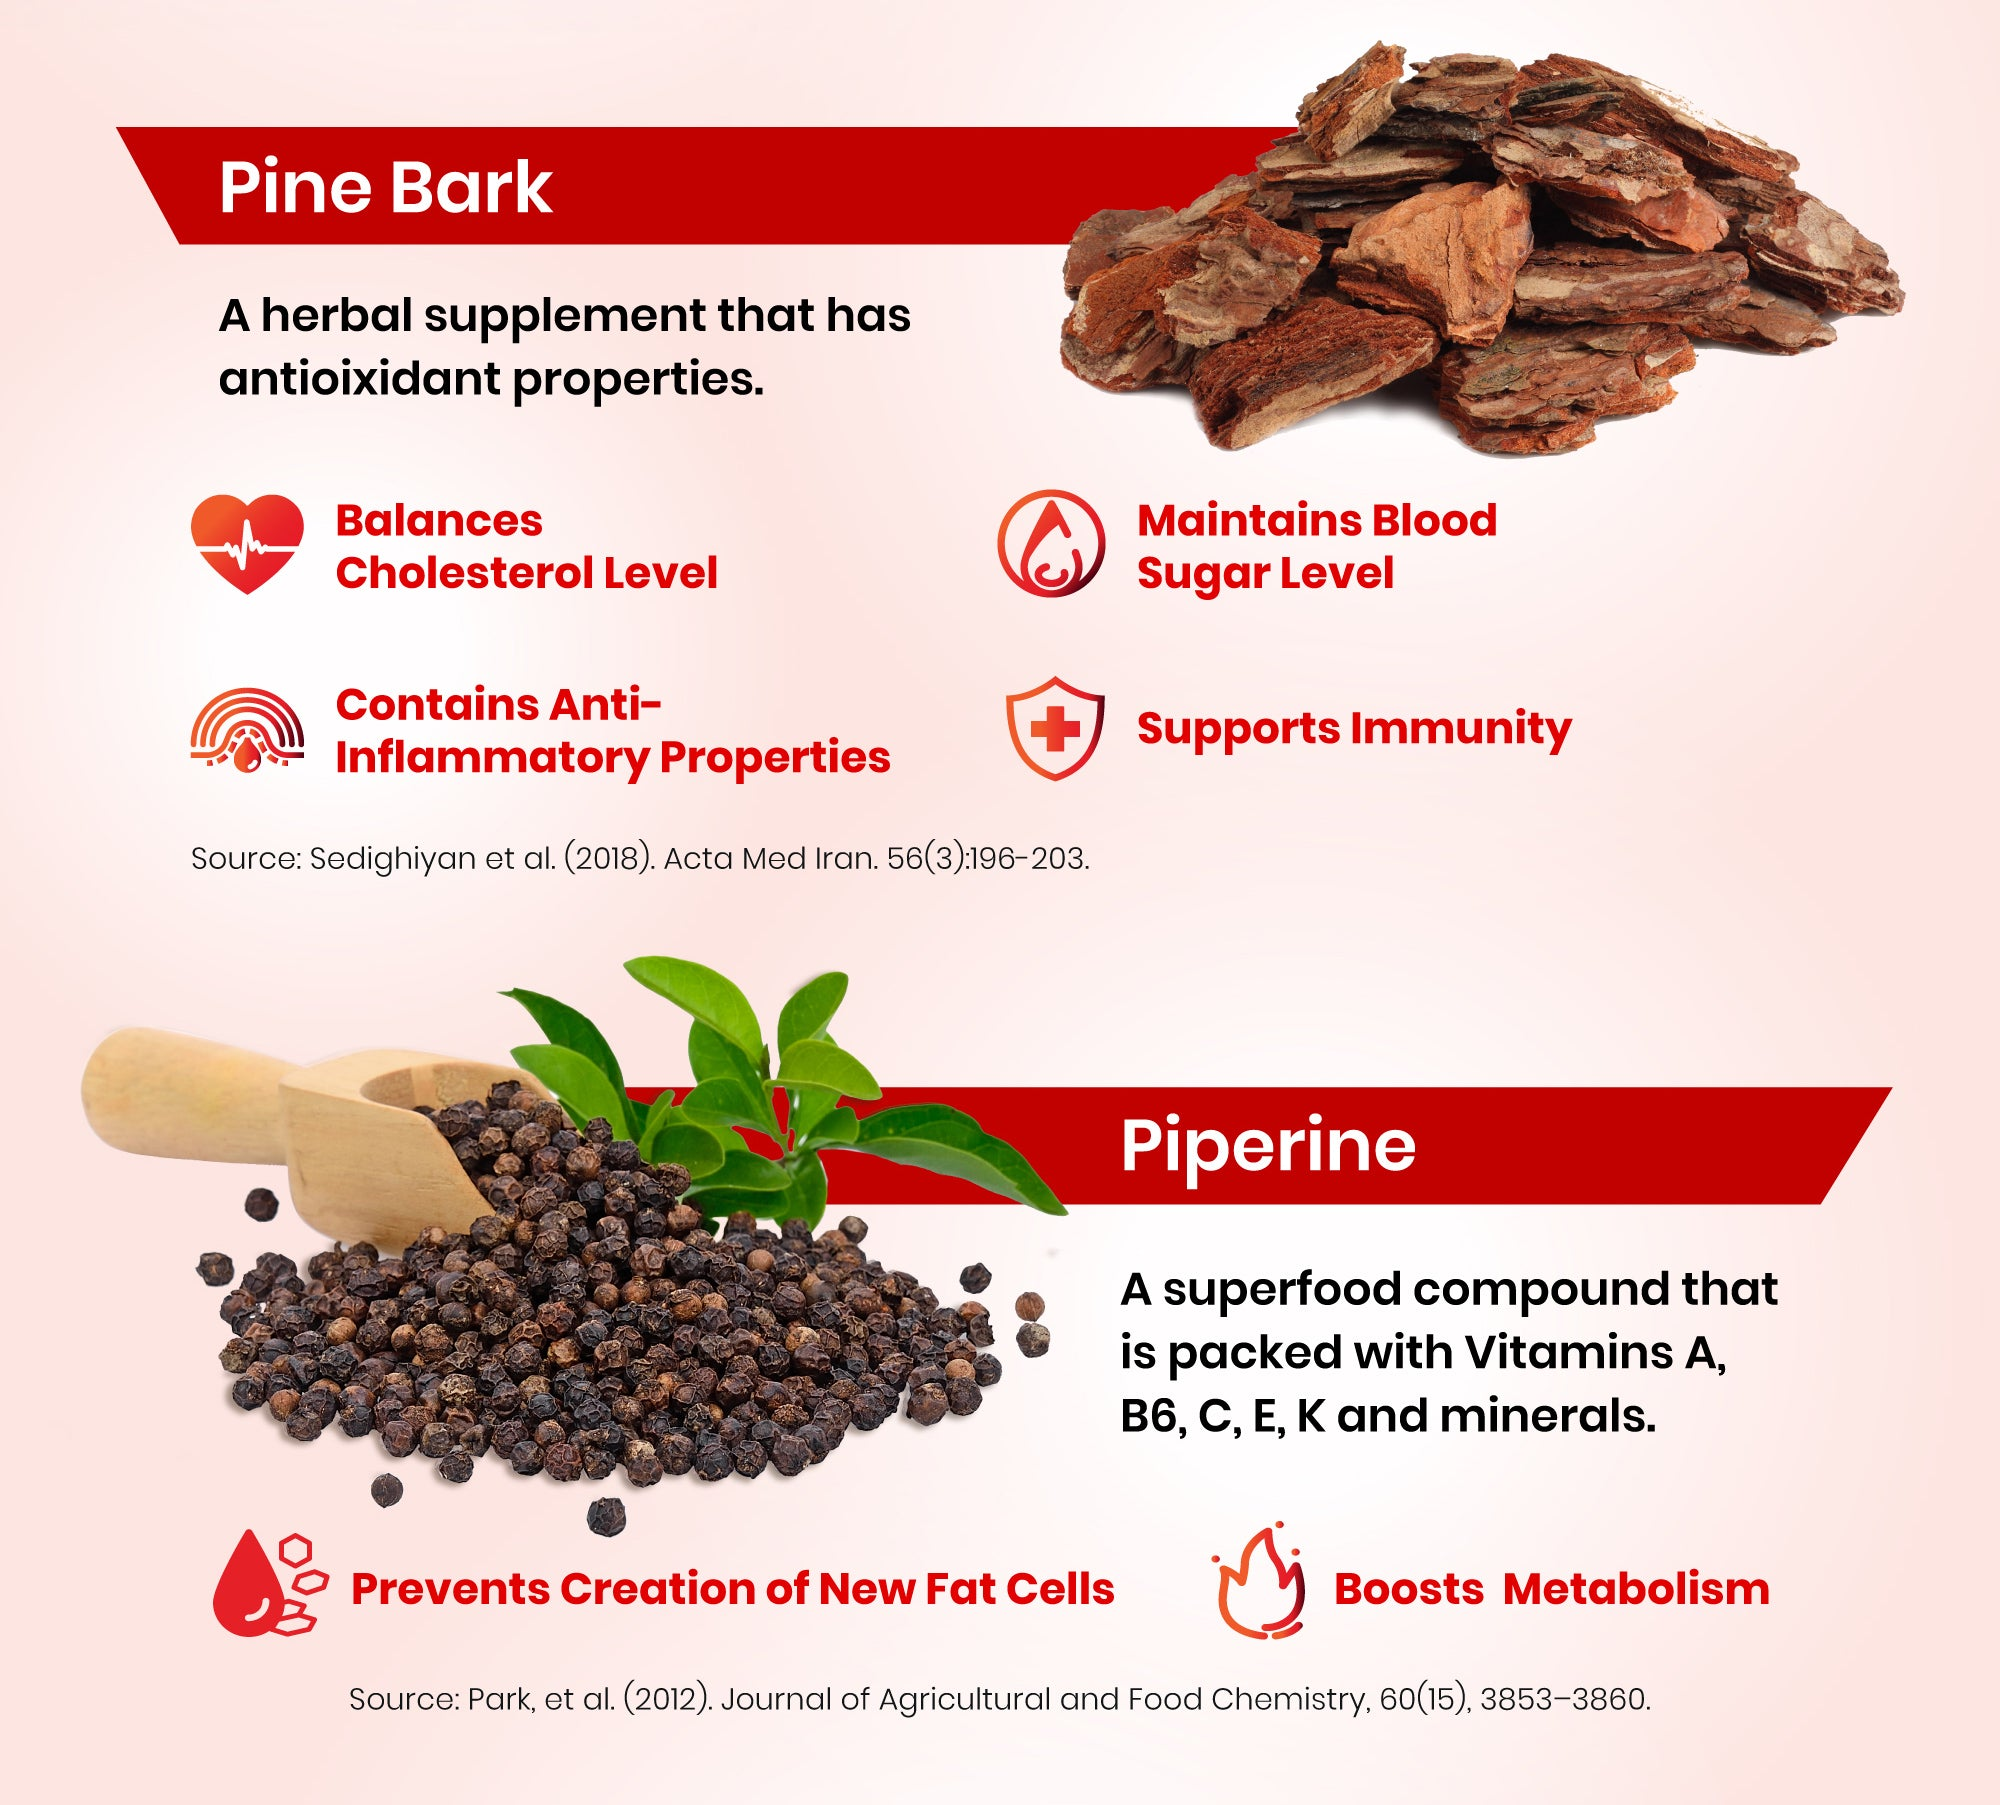 Pine bark, an herbal supplement that contains antioxidant and anti-inflammatory properties. Also, Piperine, a superfood that is packed with vitamins A, B6, C, E, K, and minerals for inhibiting the creation of new fat cells.